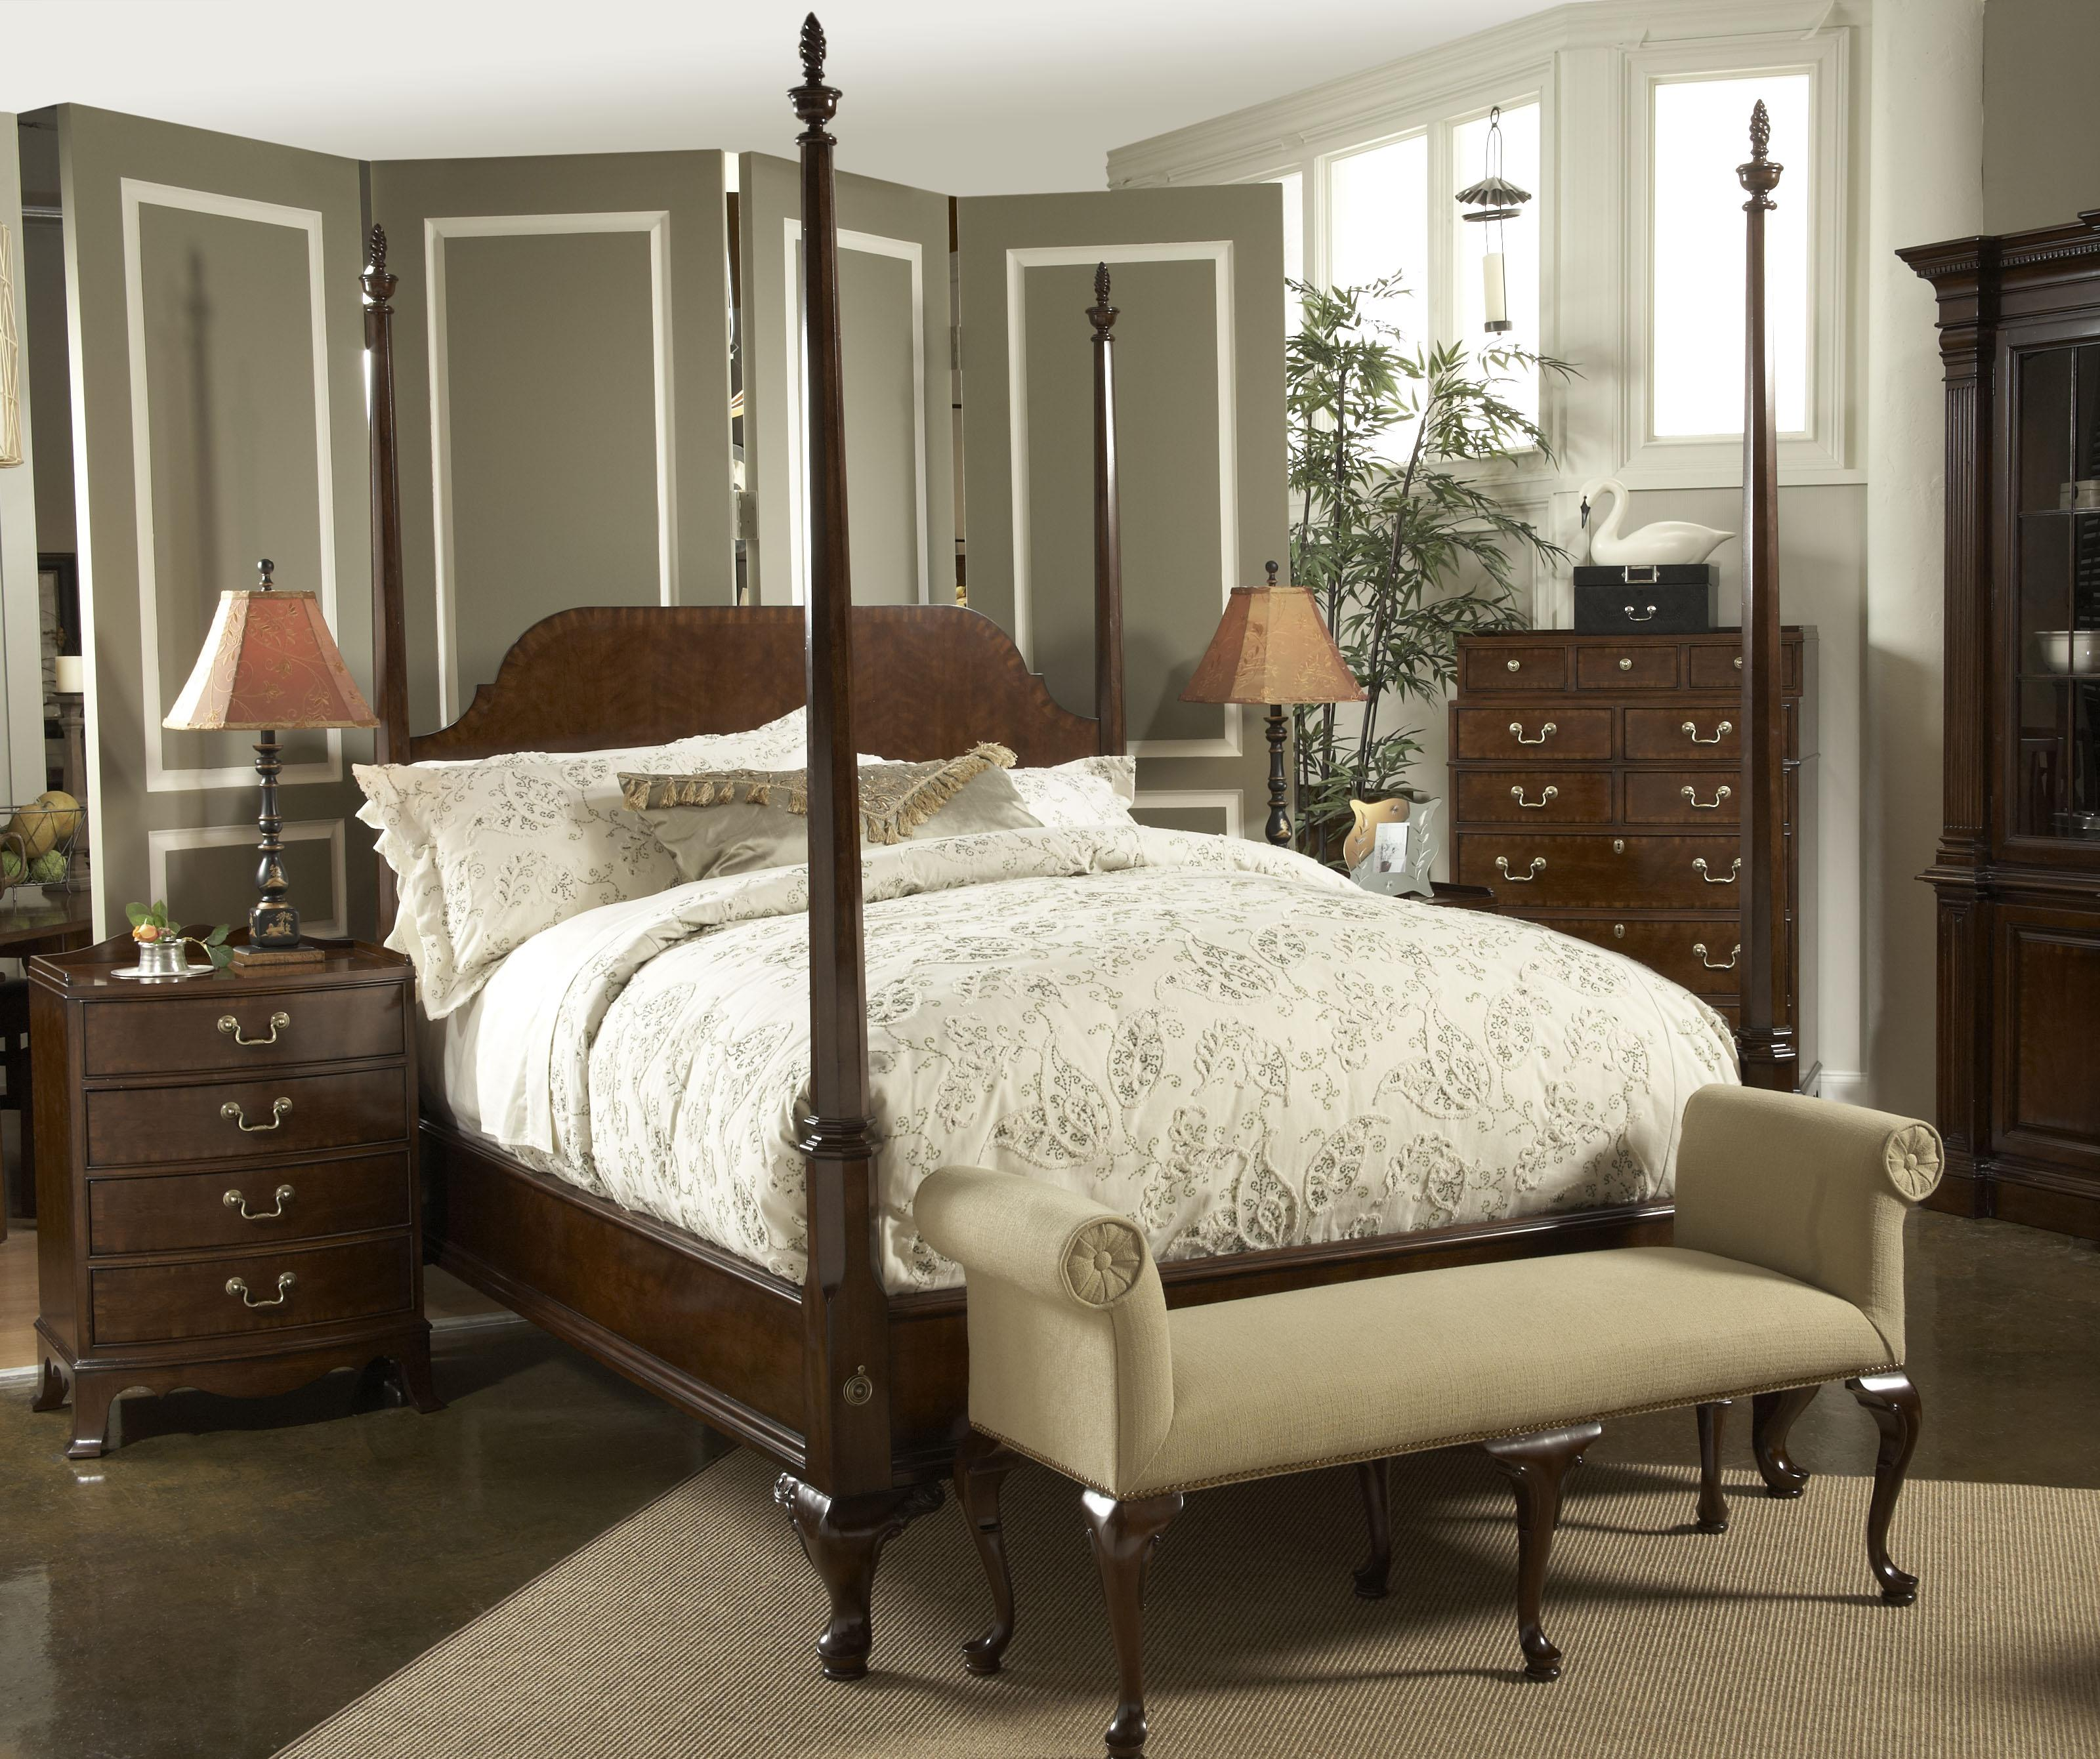 King Bed With Posts California King Size Bridgeport Pencil Poster Bed By Fine